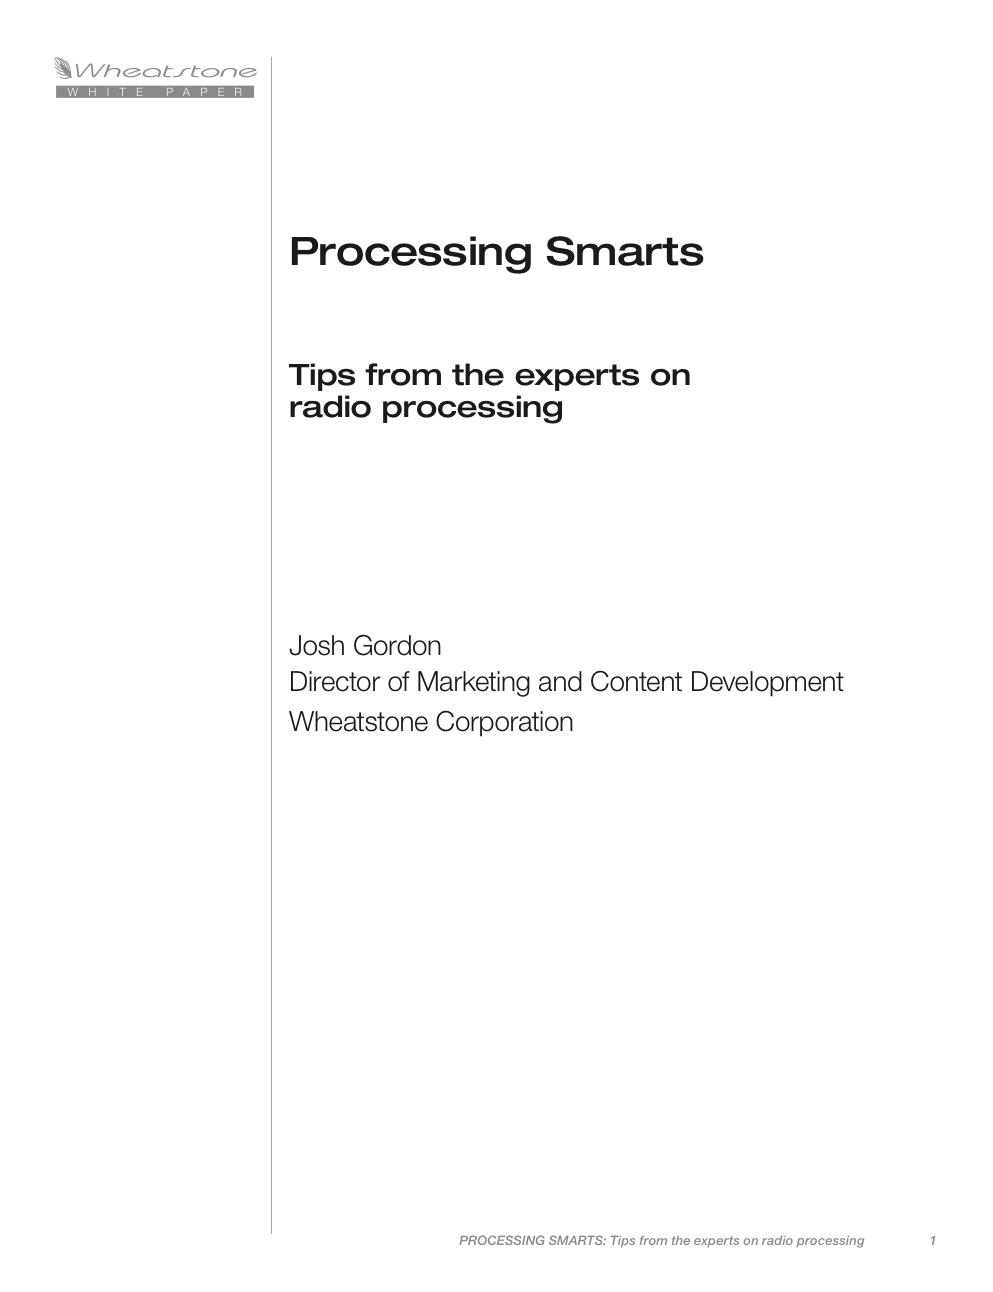 Processing Smarts: Tips from the Experts White Paper